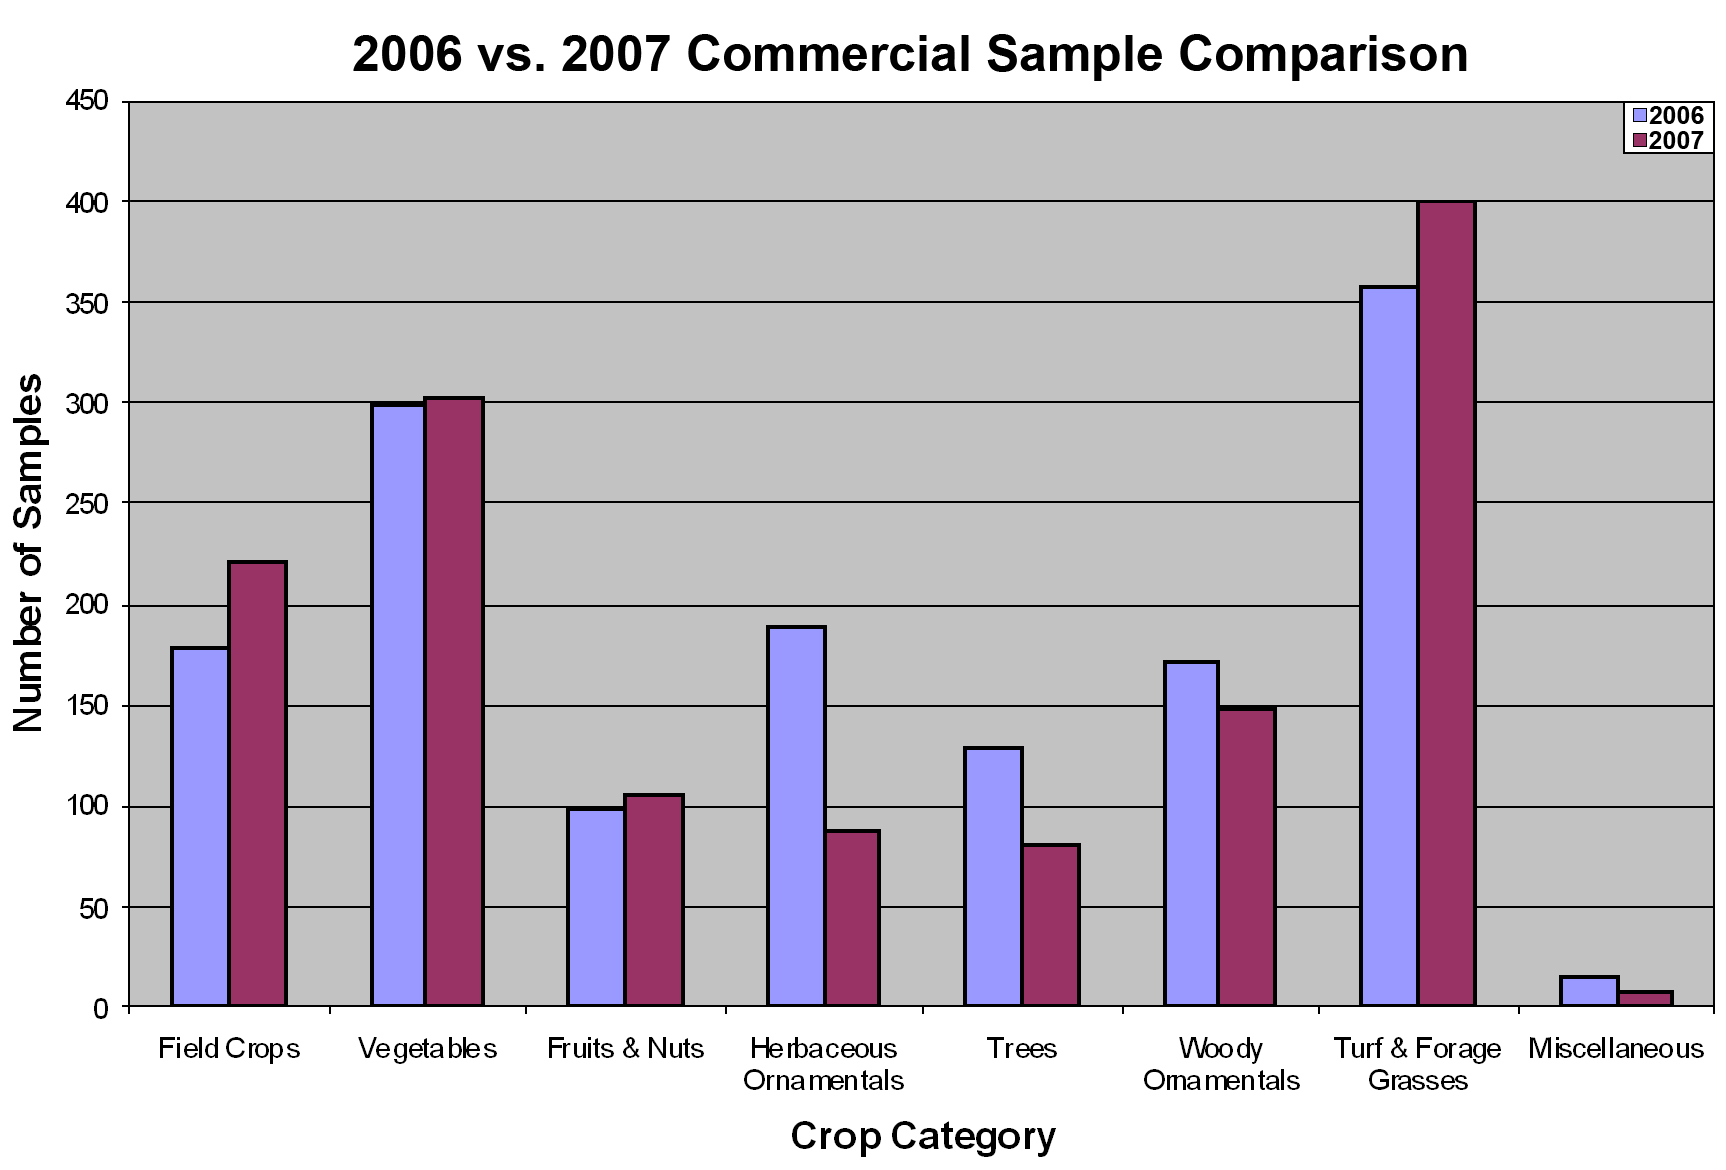 2006 vs. 2007 Commercial Sample Comparison